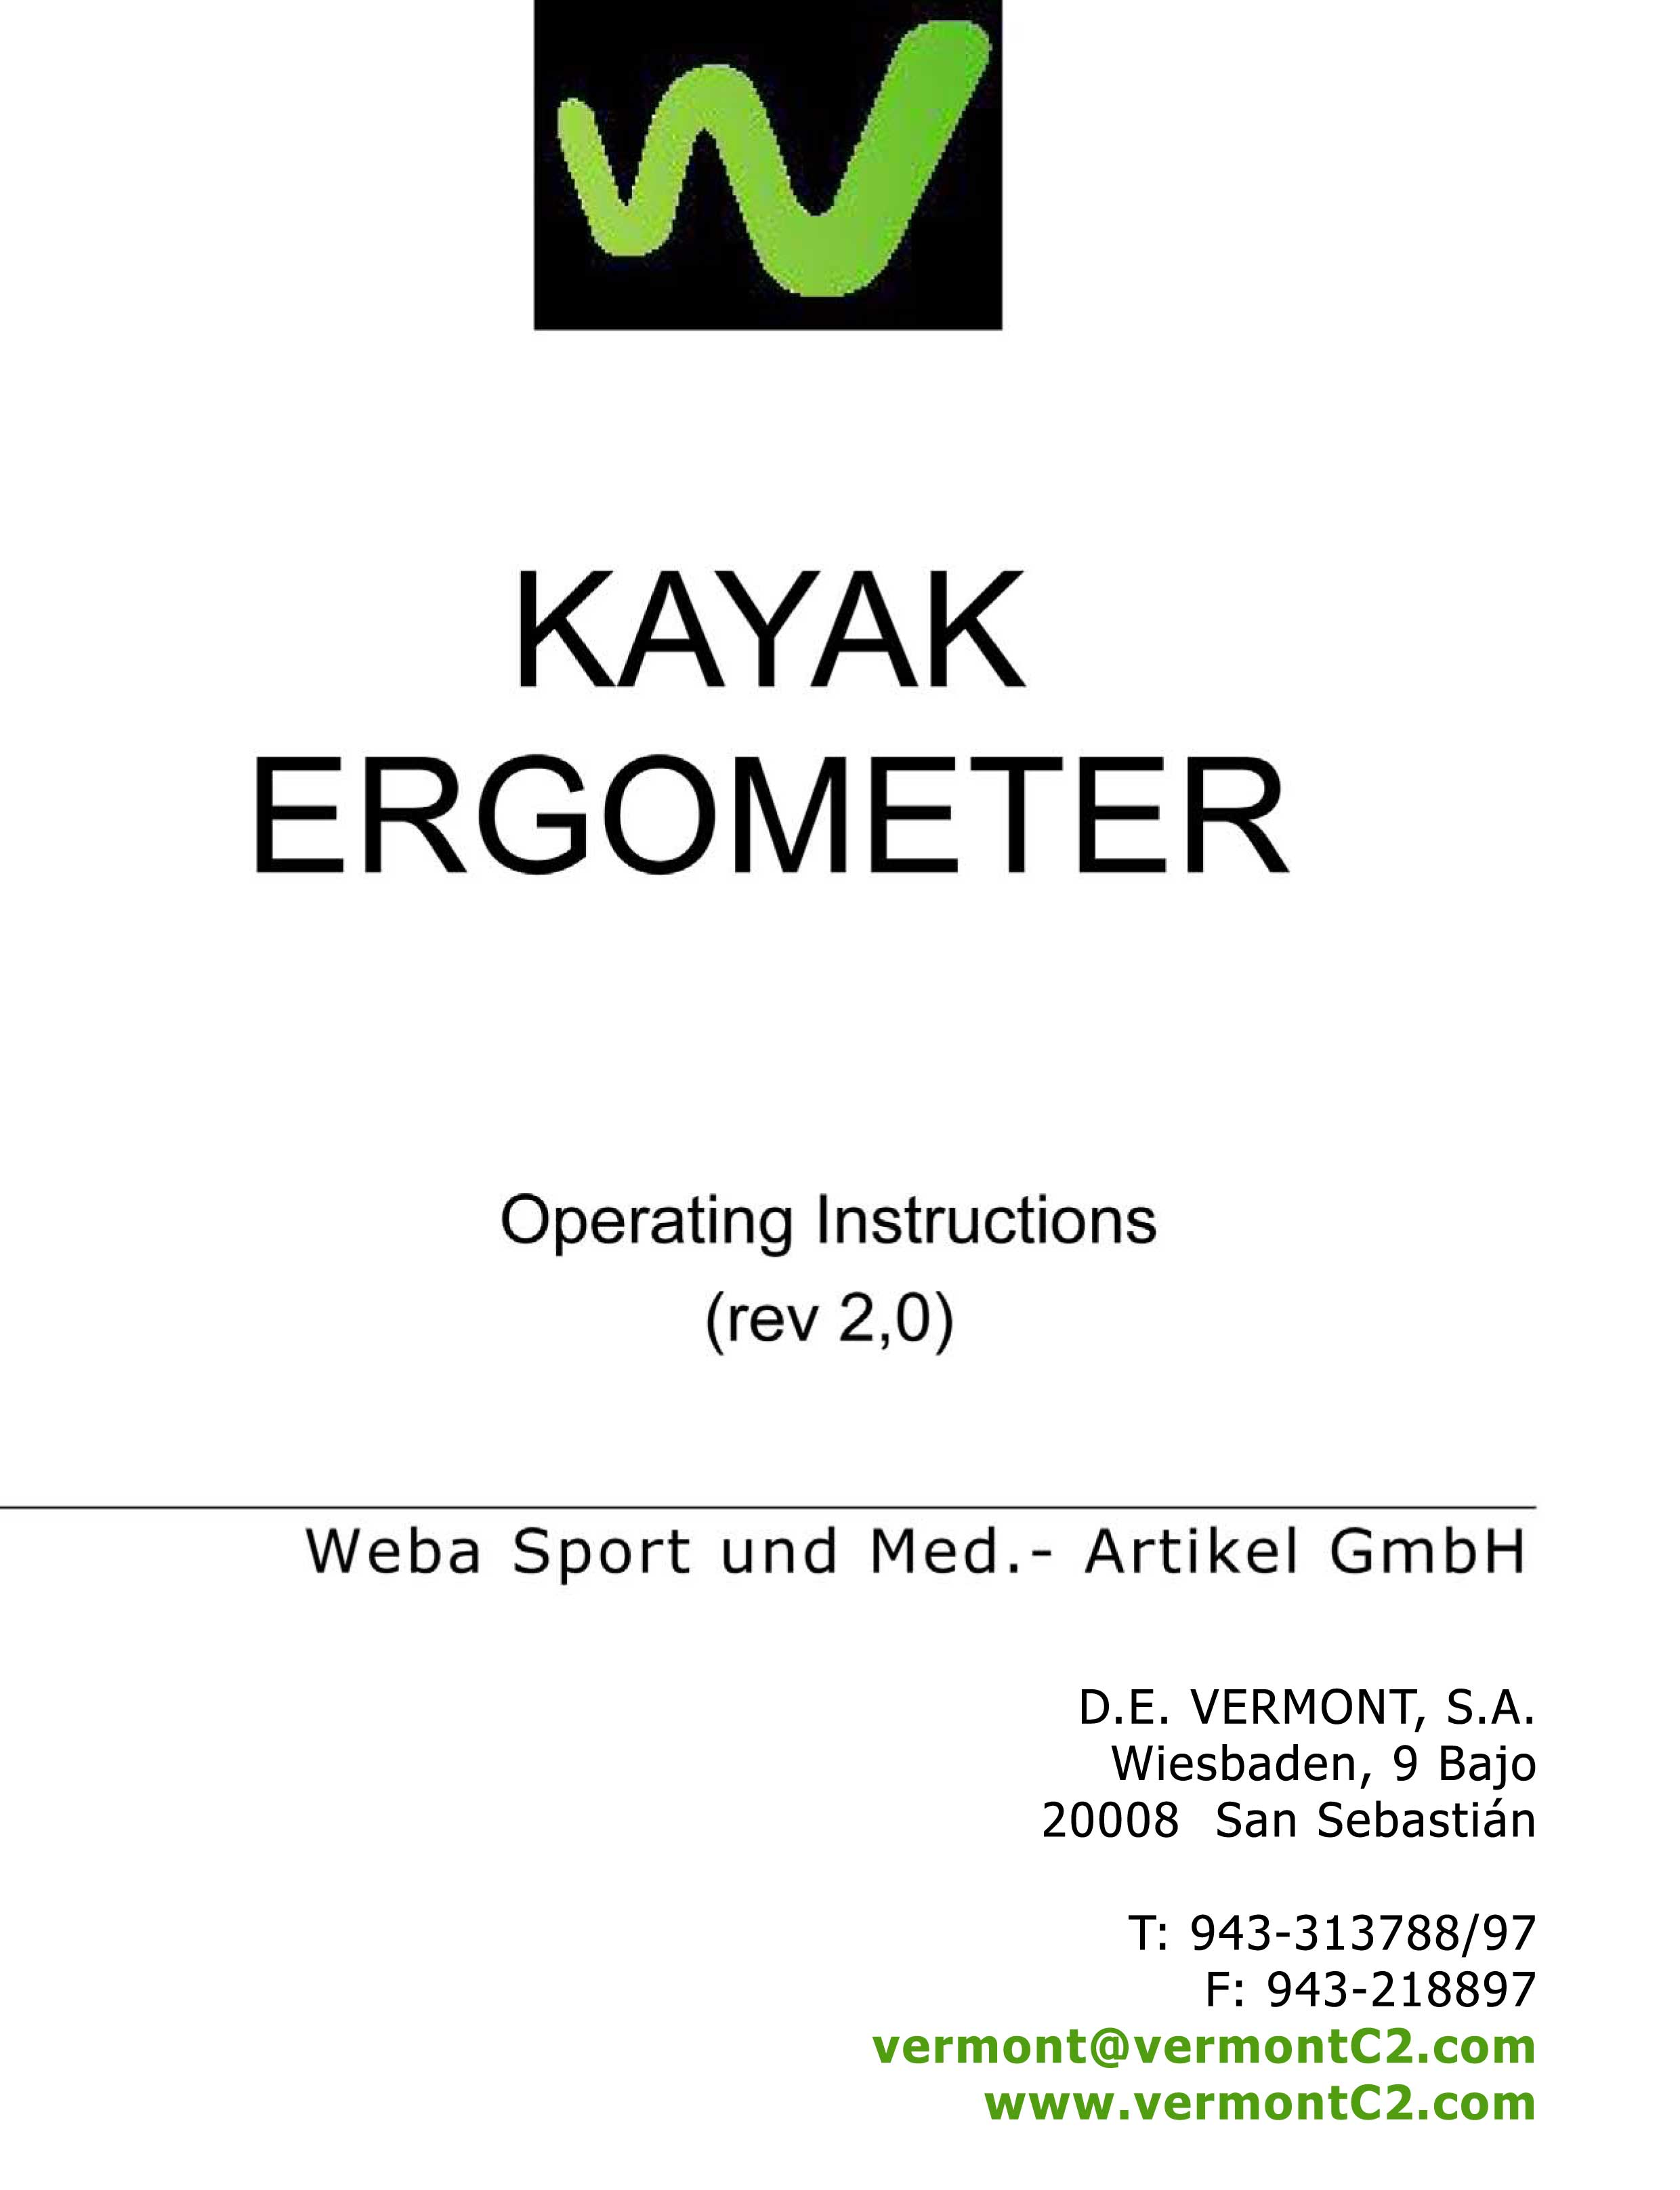 Manual del Kayakergómetro Weba